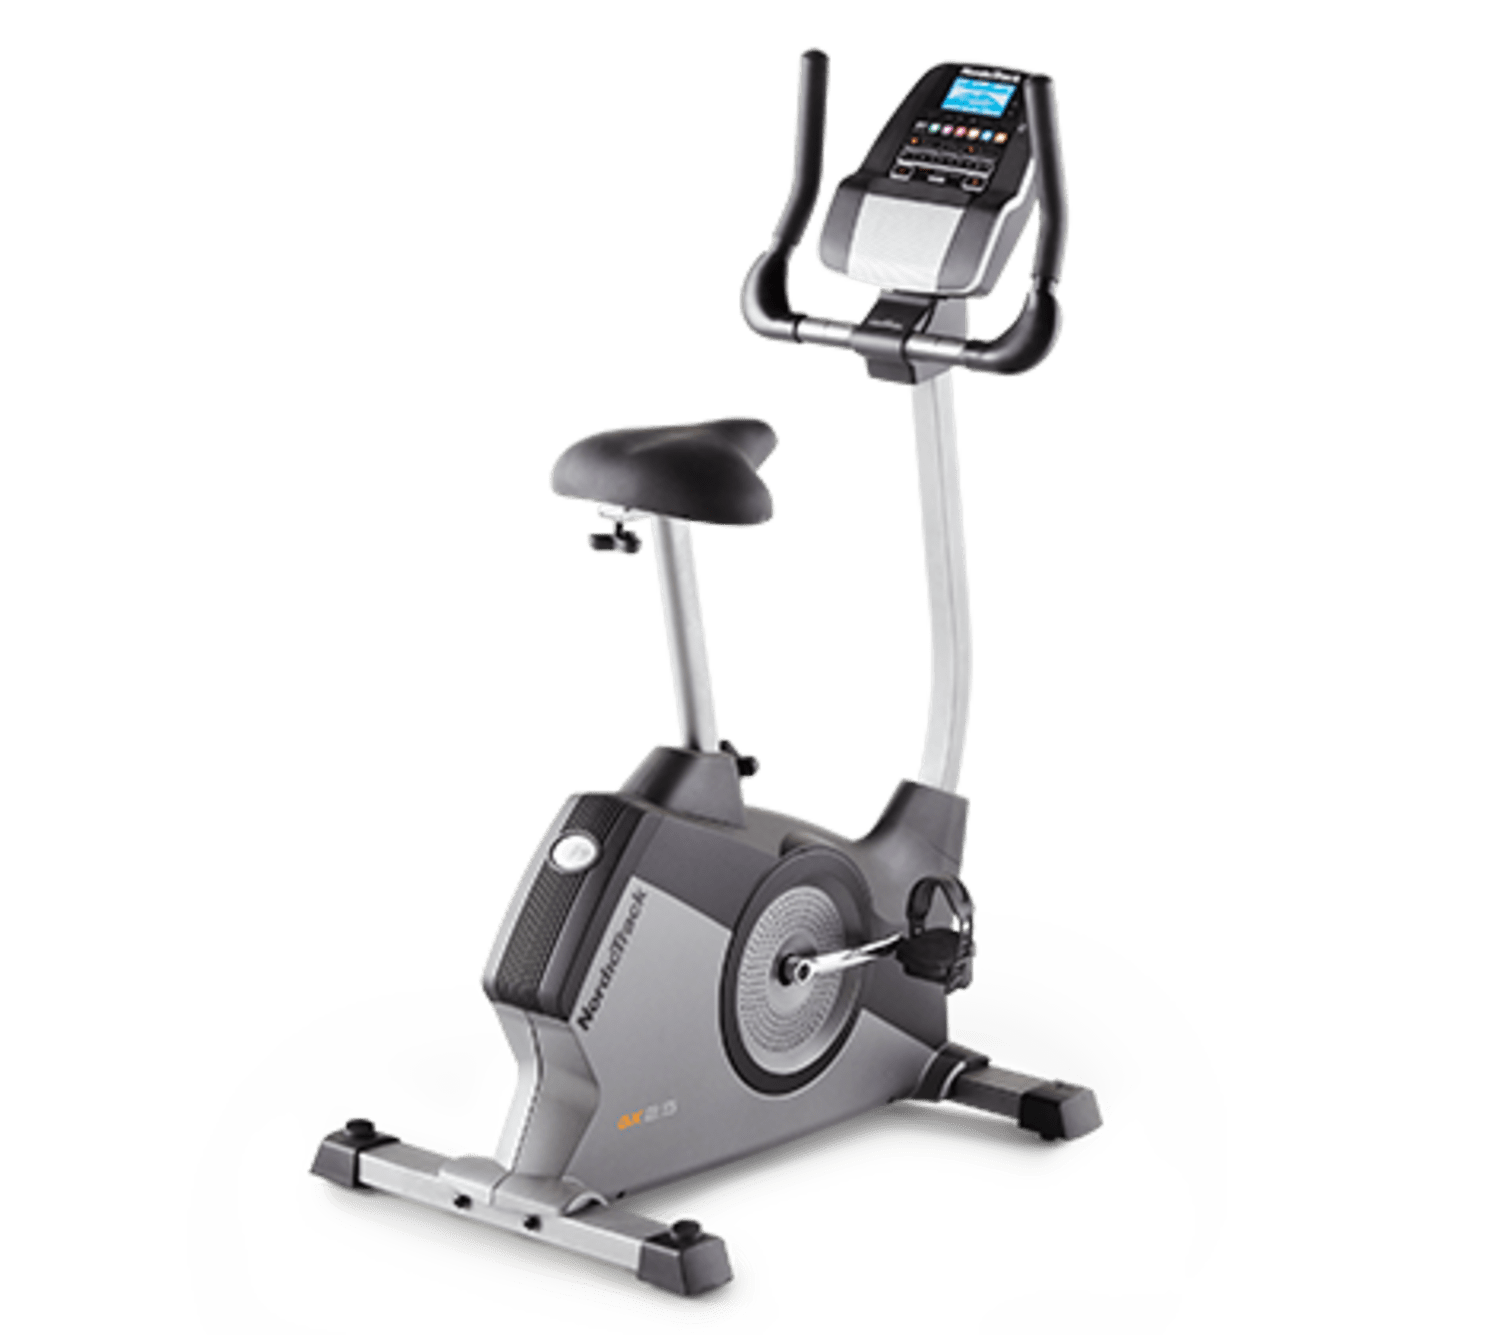 Gym clipart cycling machine. Nordictrack gx sport exercise